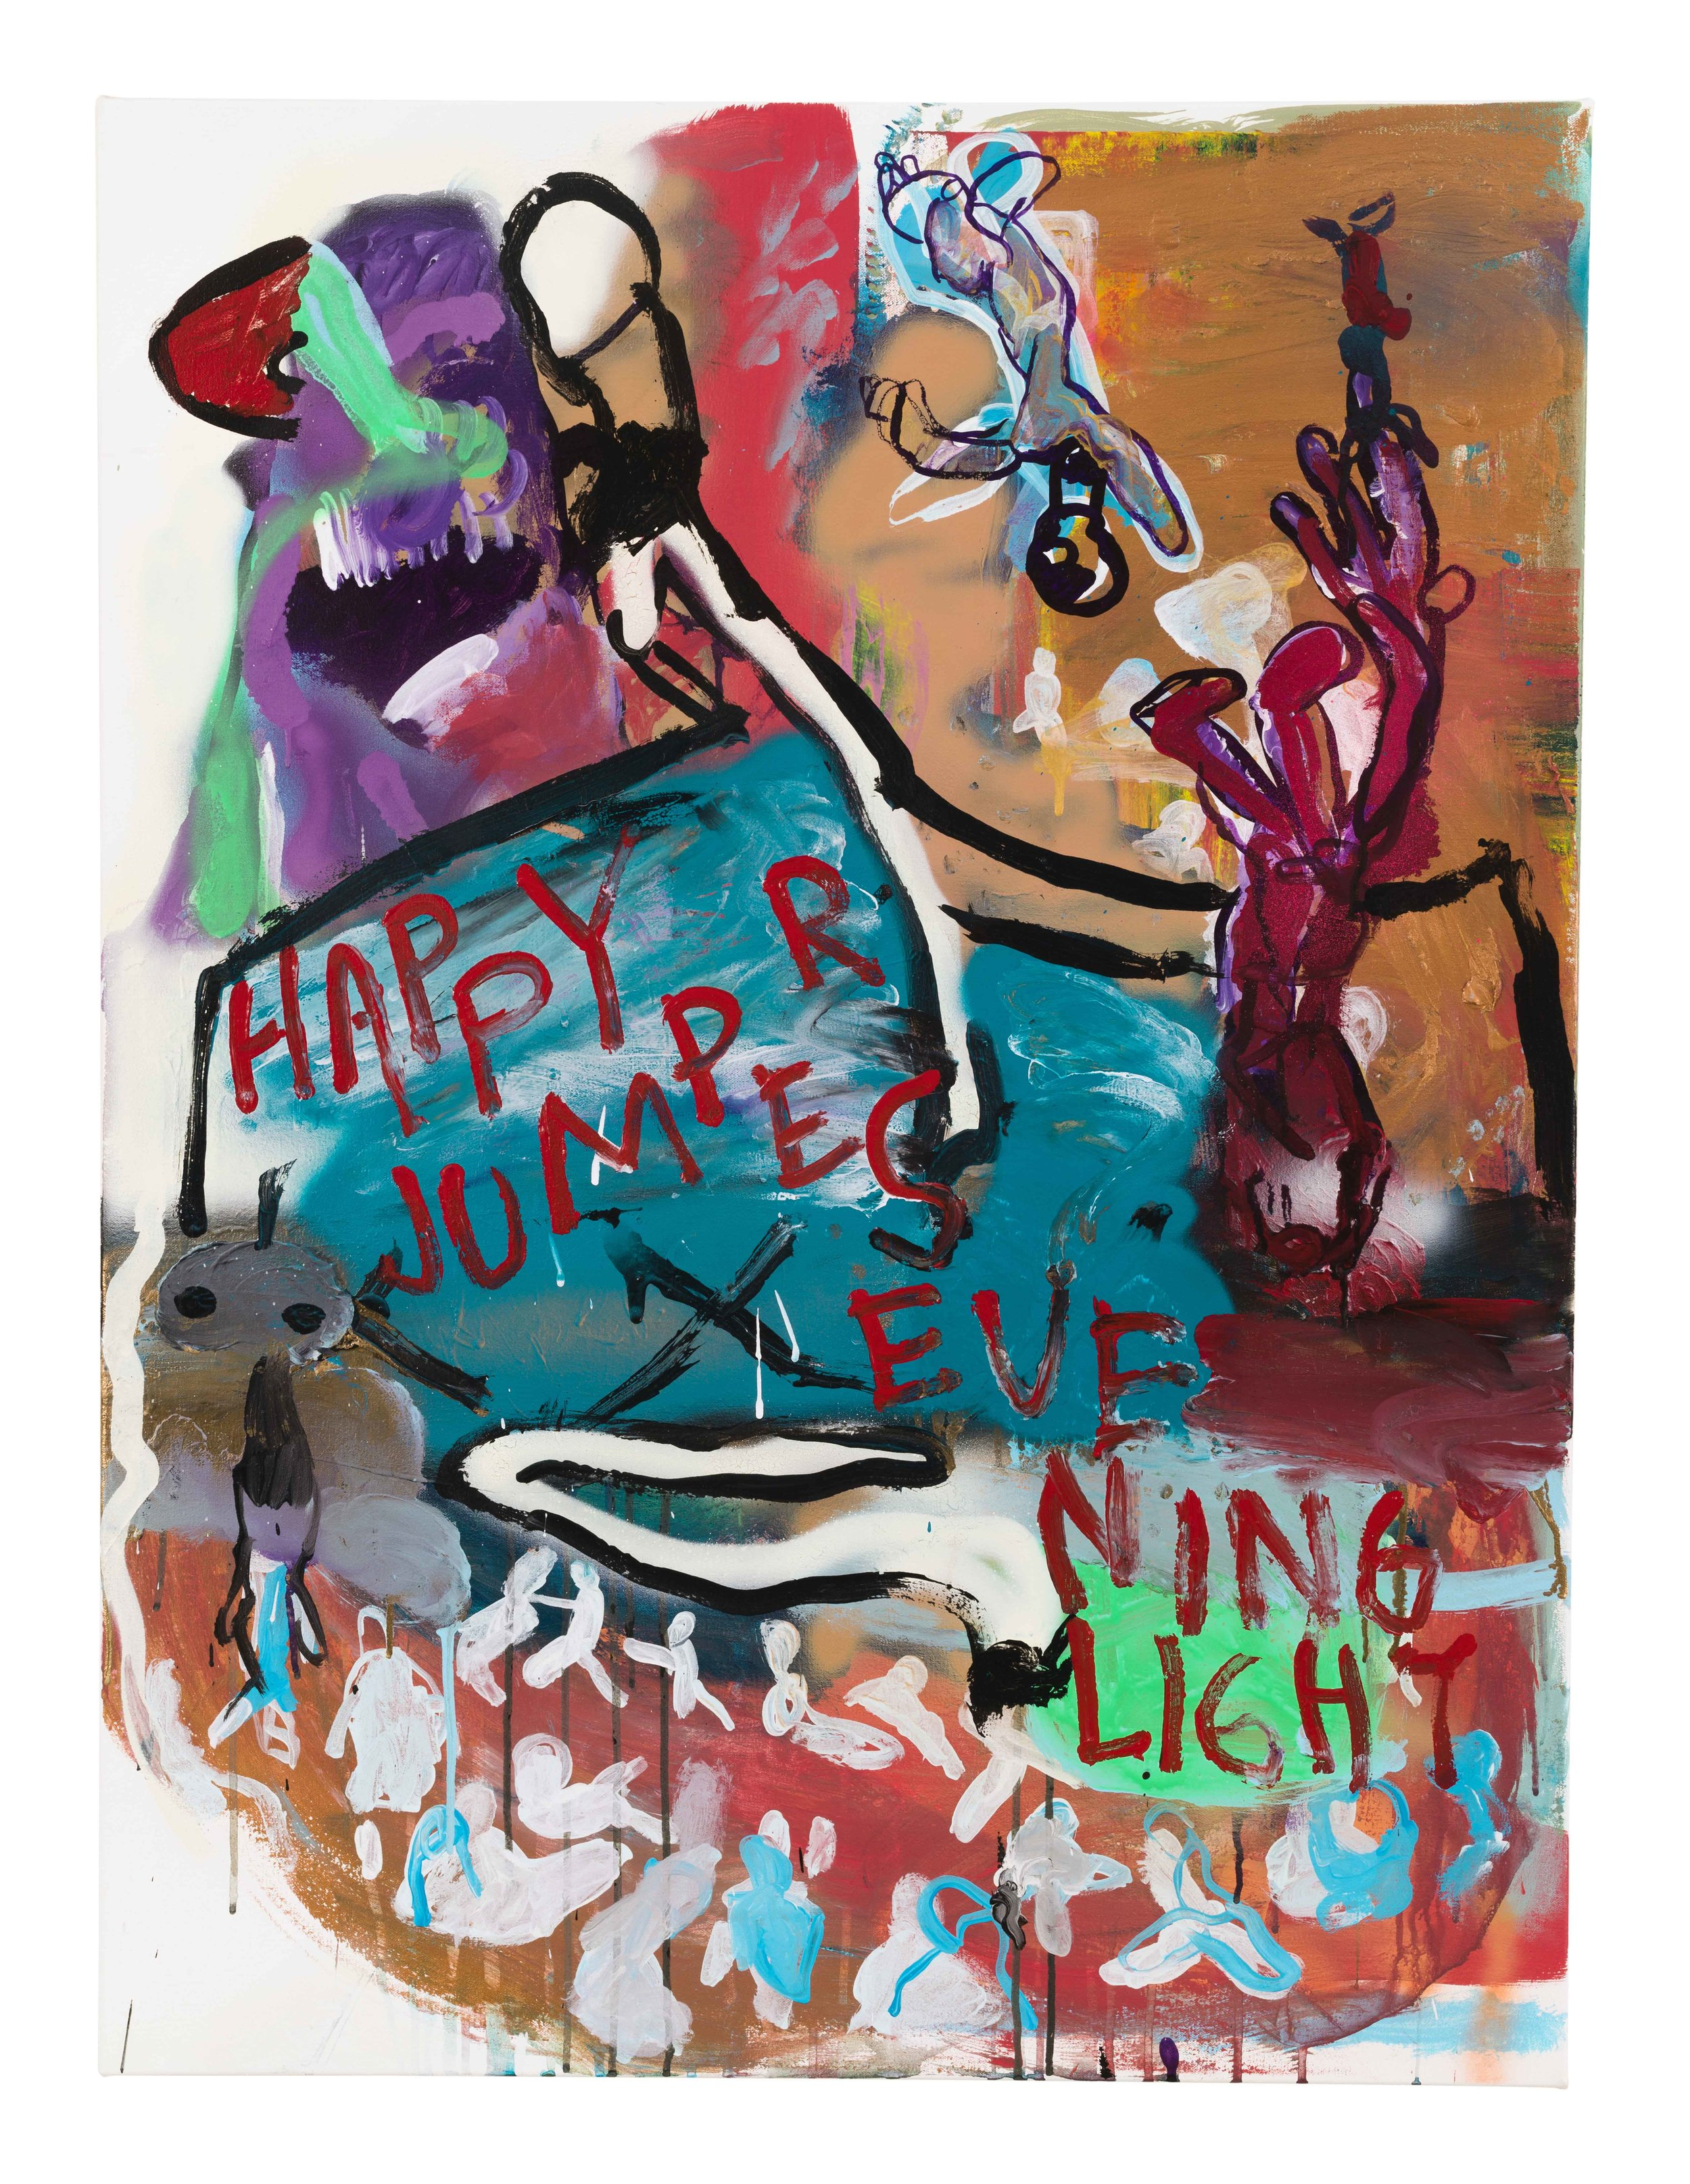 Drew Beattie and Ben Shepard  Happy Jumpers  2015 acrylic and spray paint on canvas 40 x 30 inches